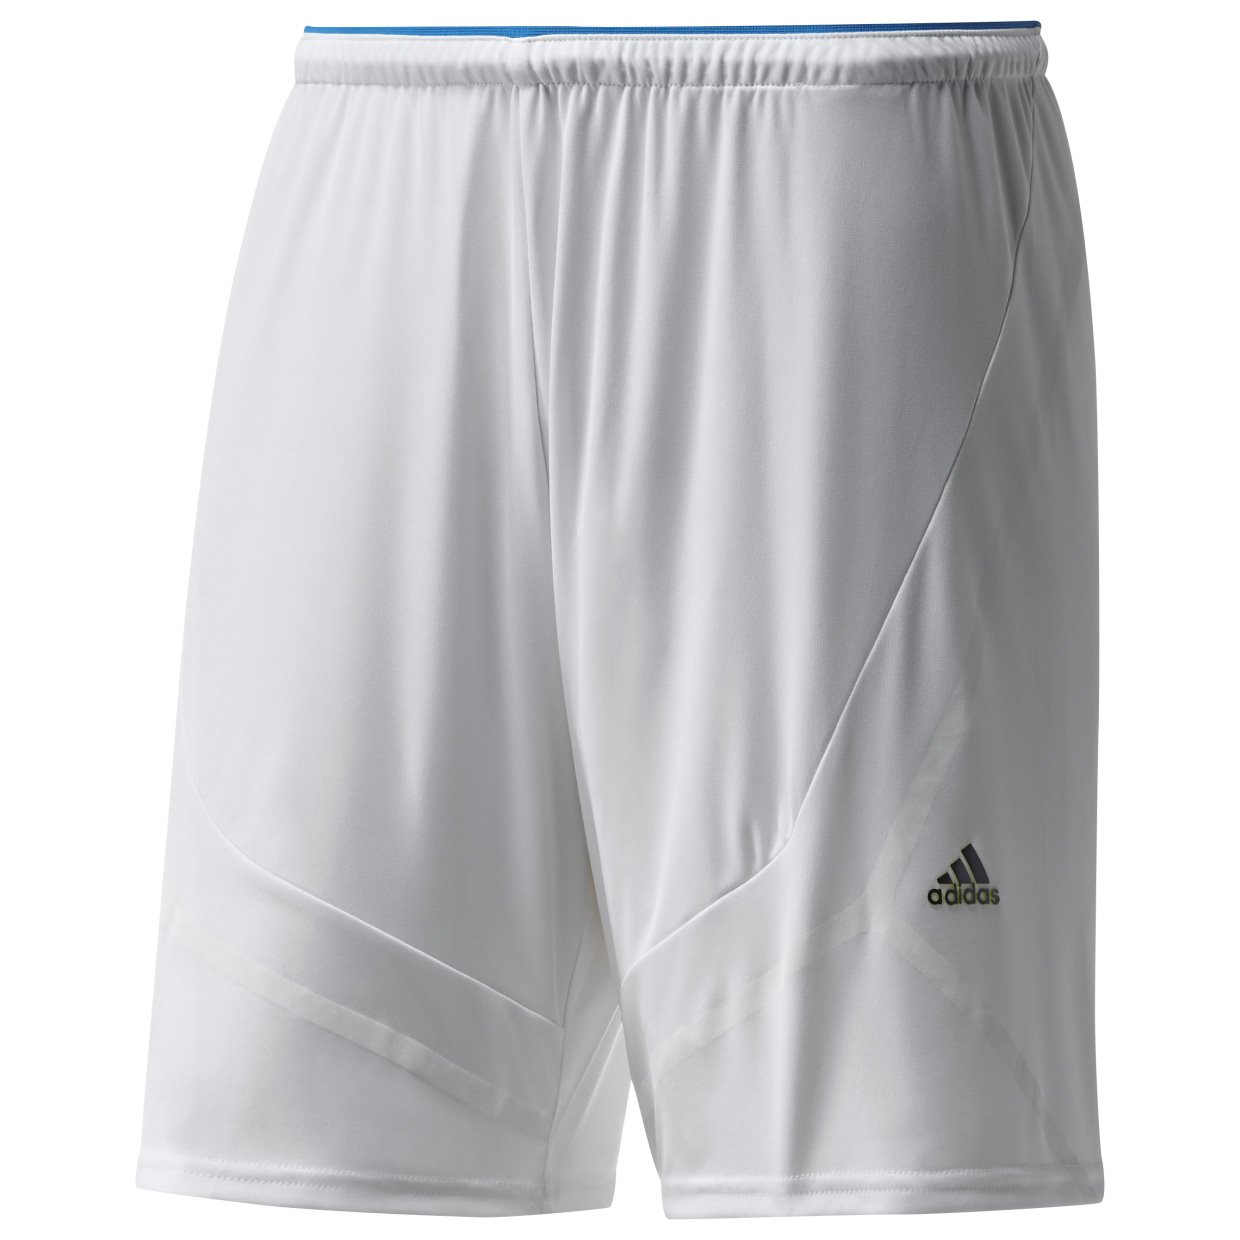 Adidas adiZero F50 Messi Training Shorts White